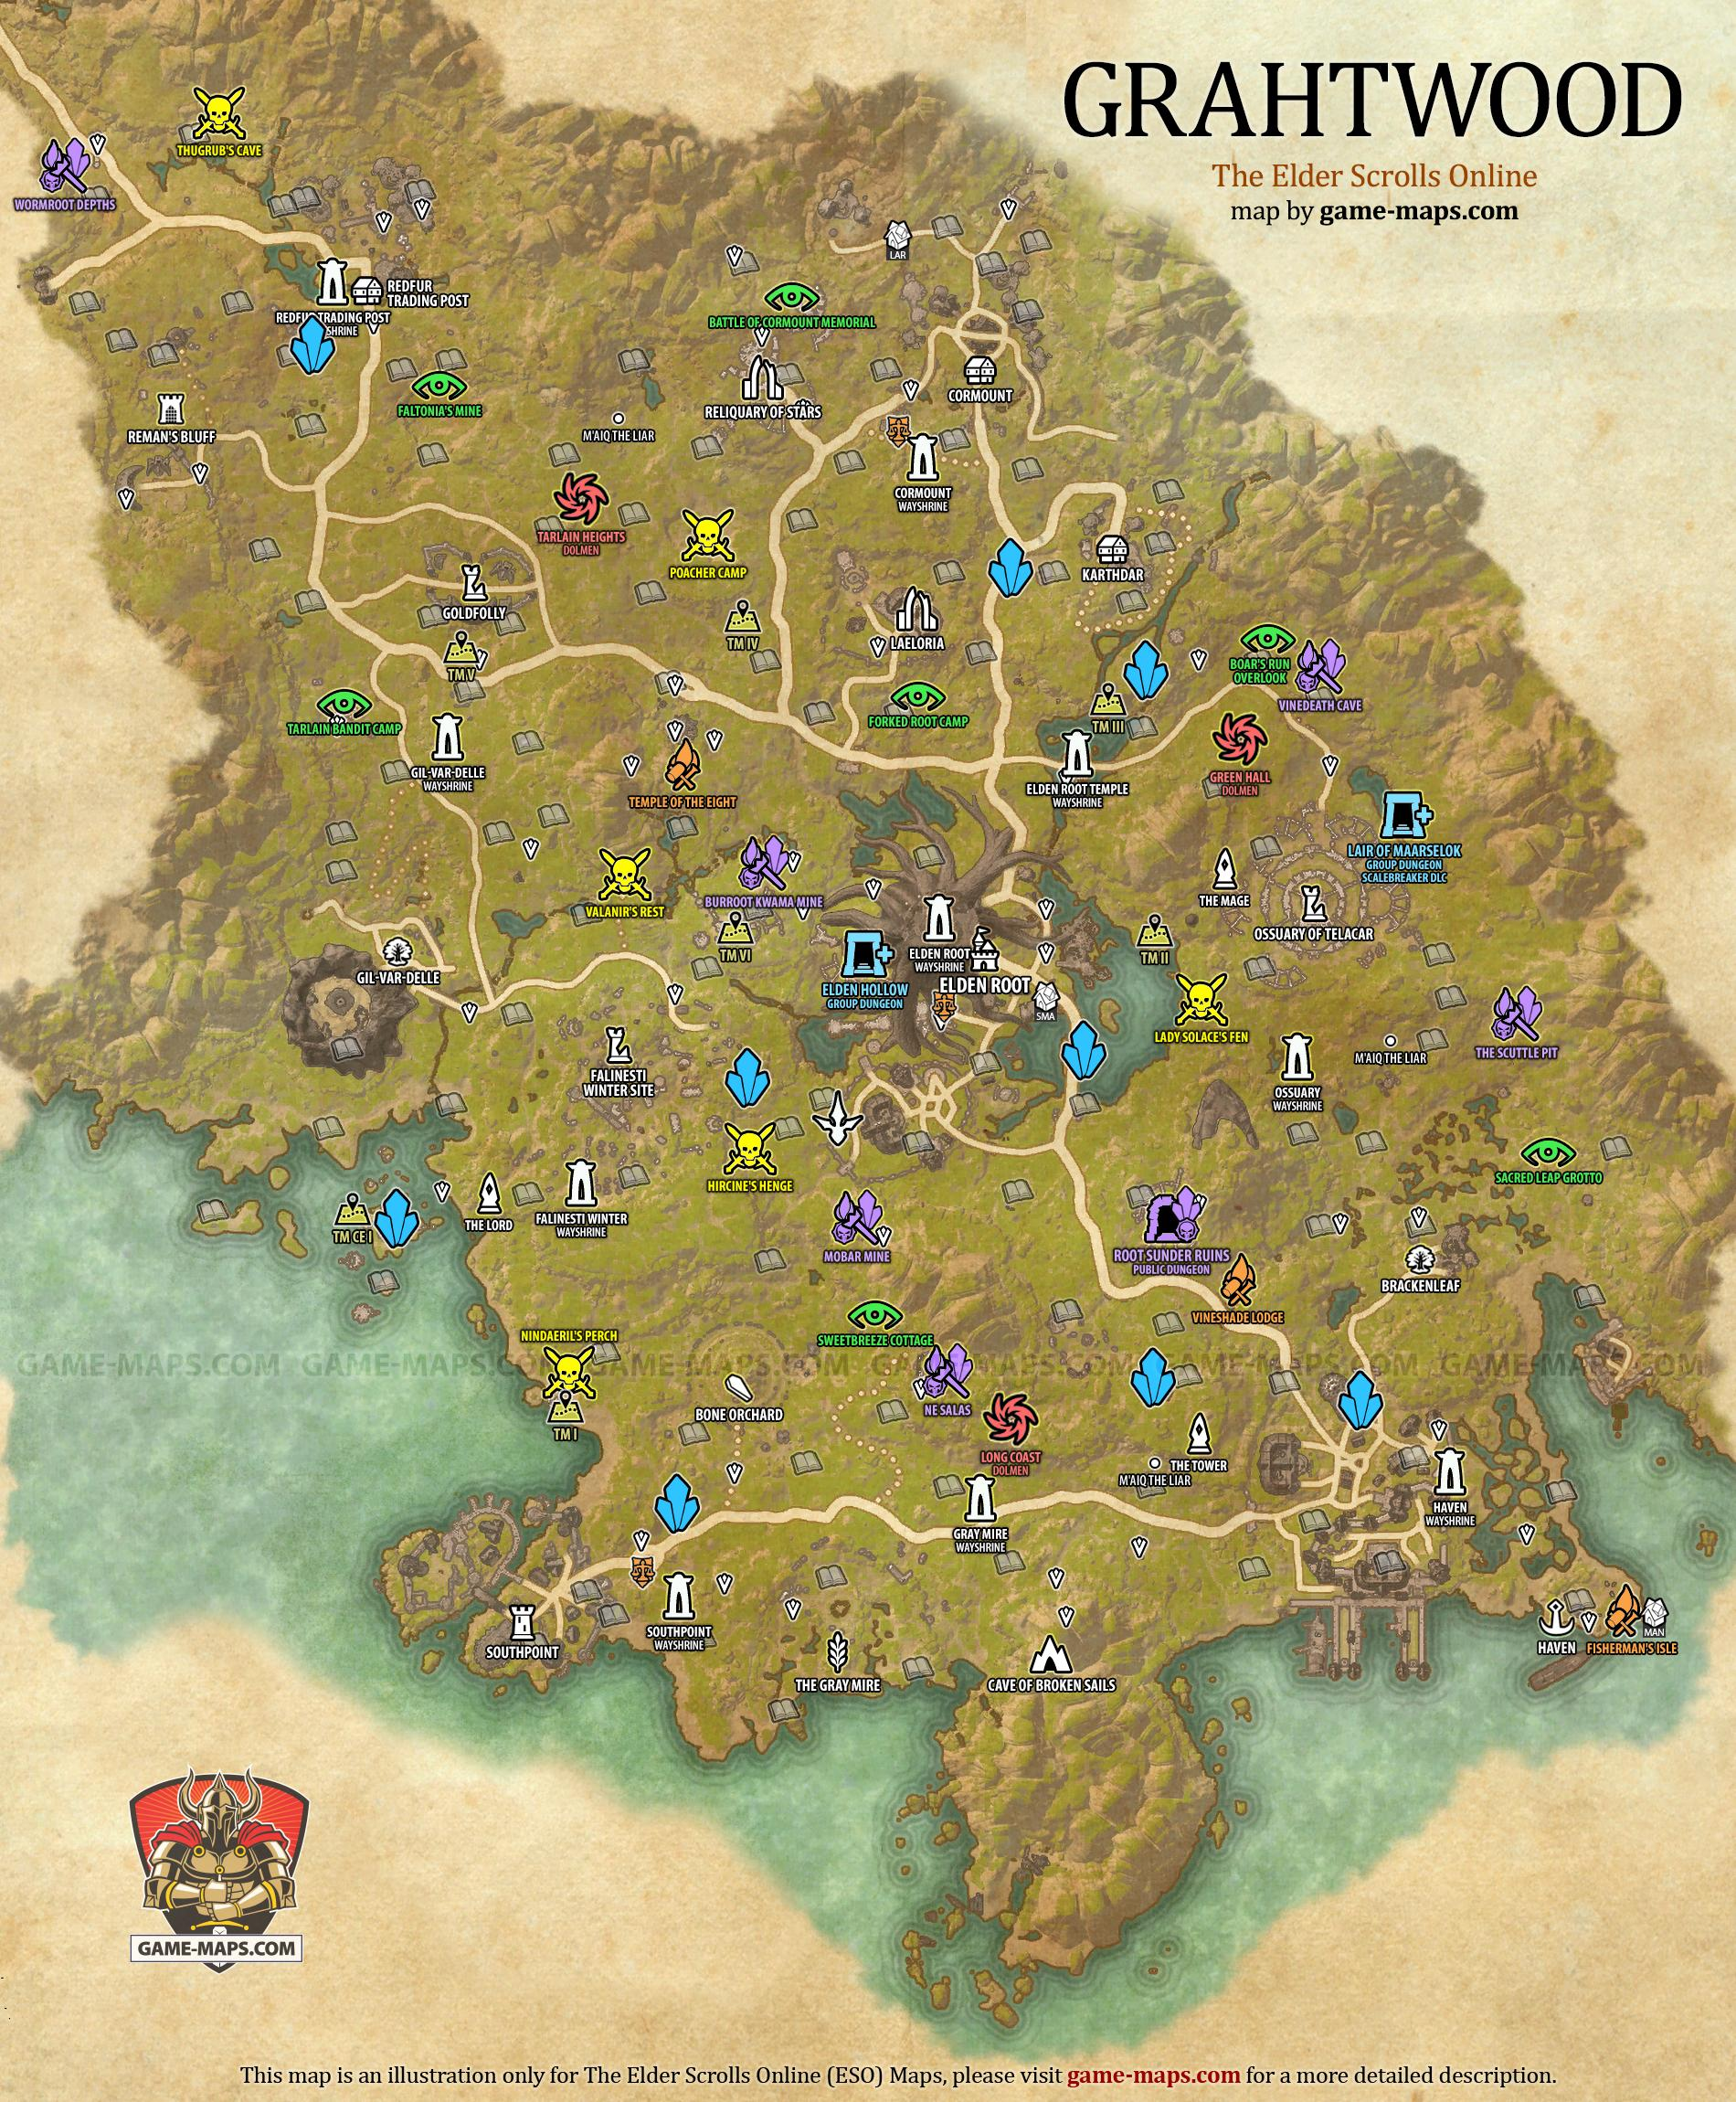 Grahtwood Map - The Elder Scrolls Online | game-maps.com